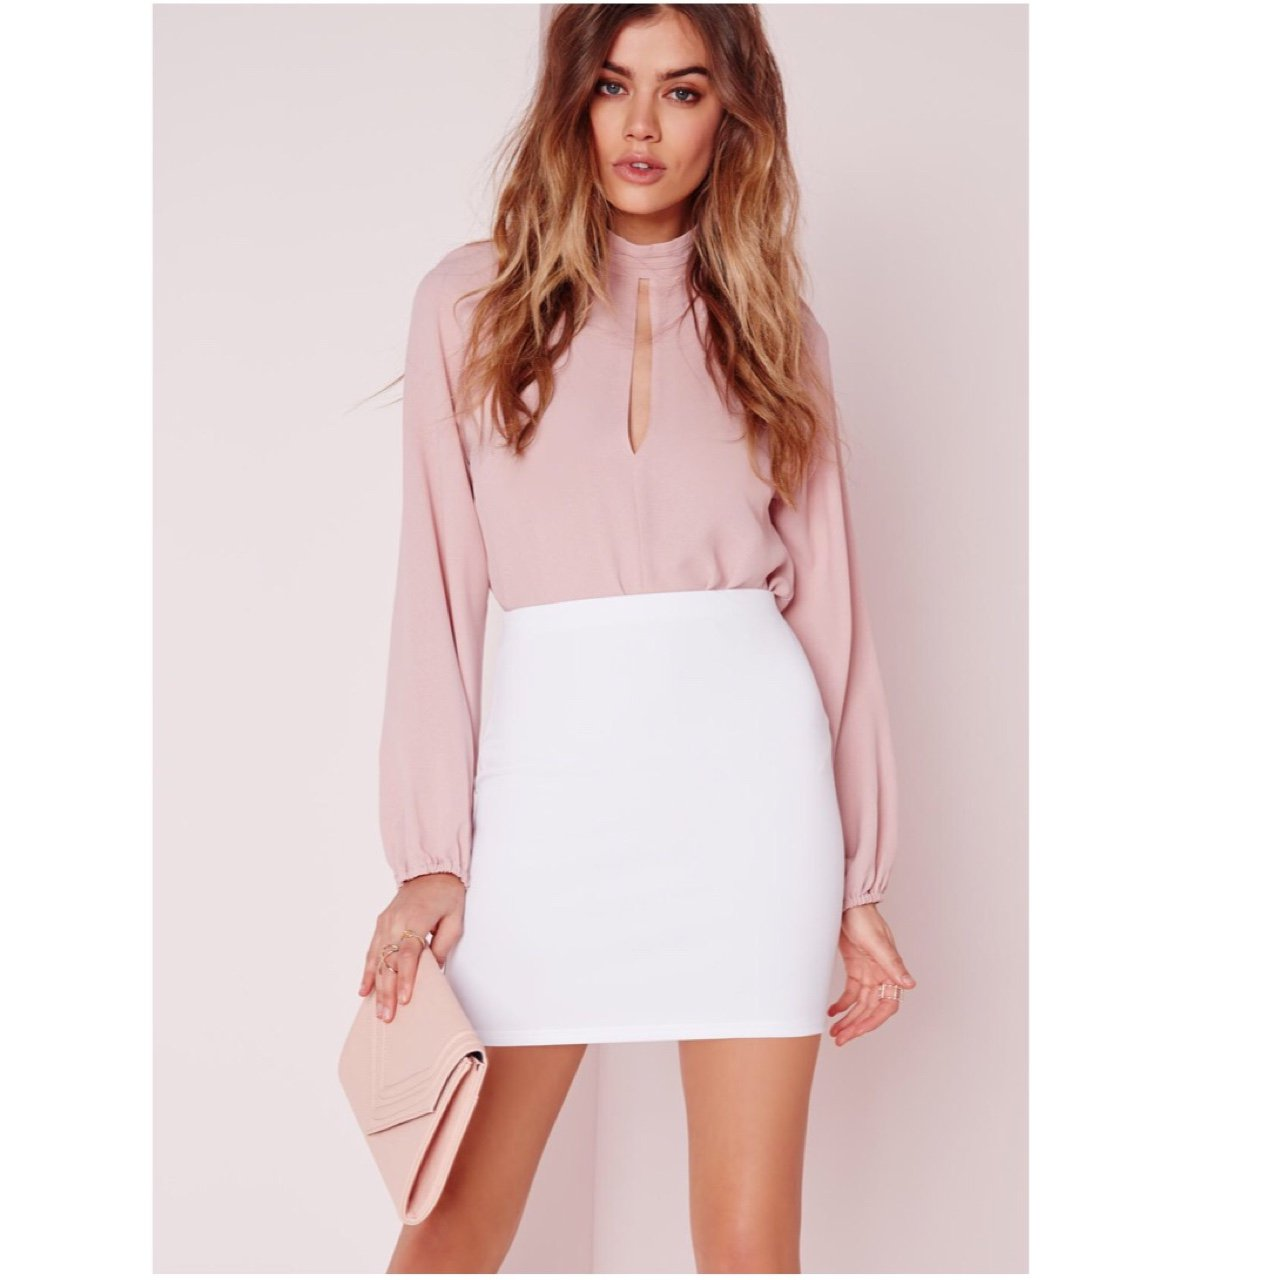 White Skirt from Missguided. Worn twice before. On sale for - Depop 43ee3dcce